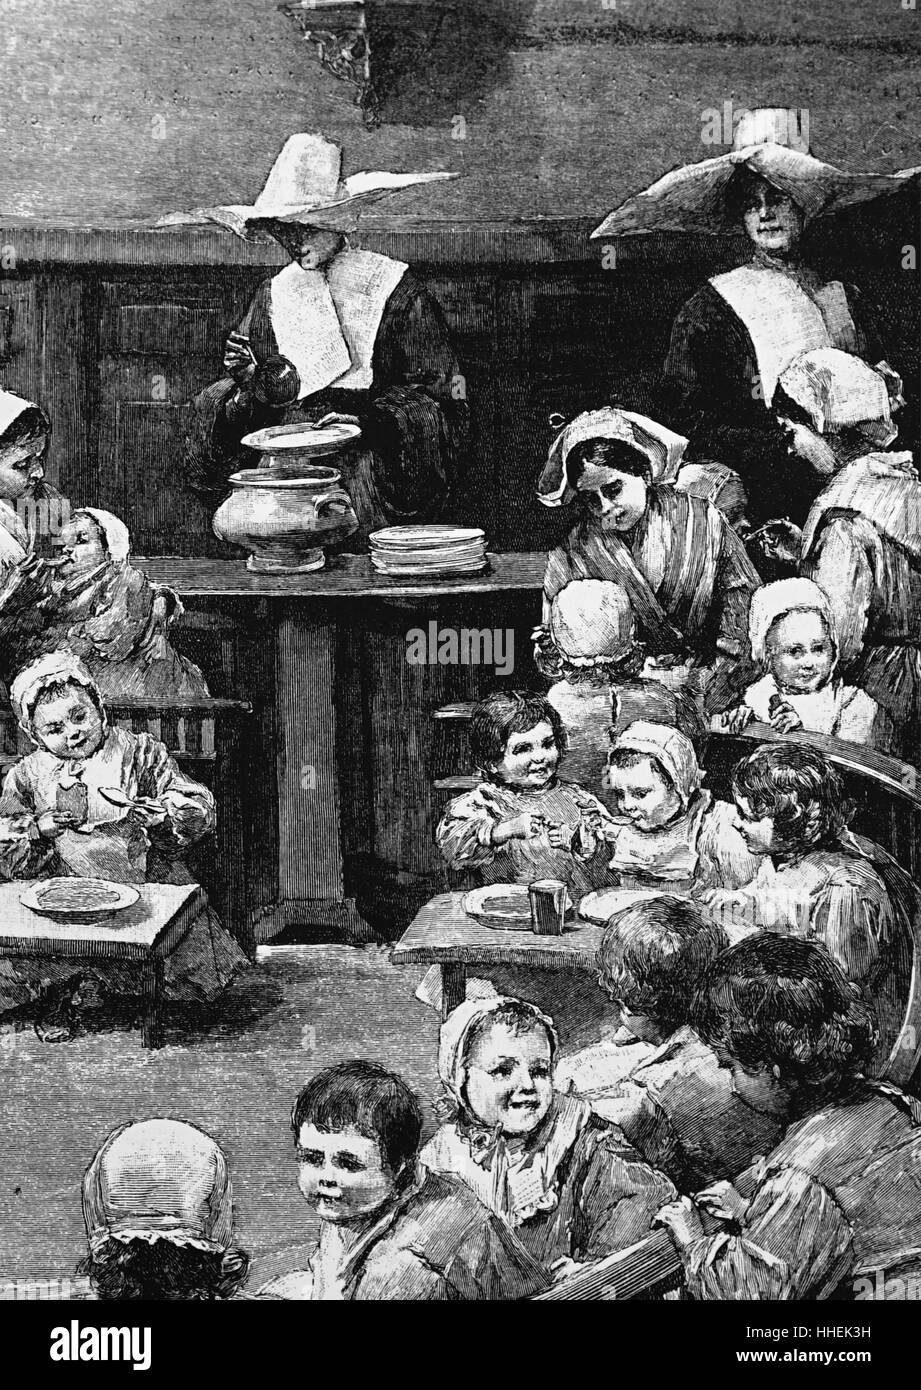 19th century orphanages